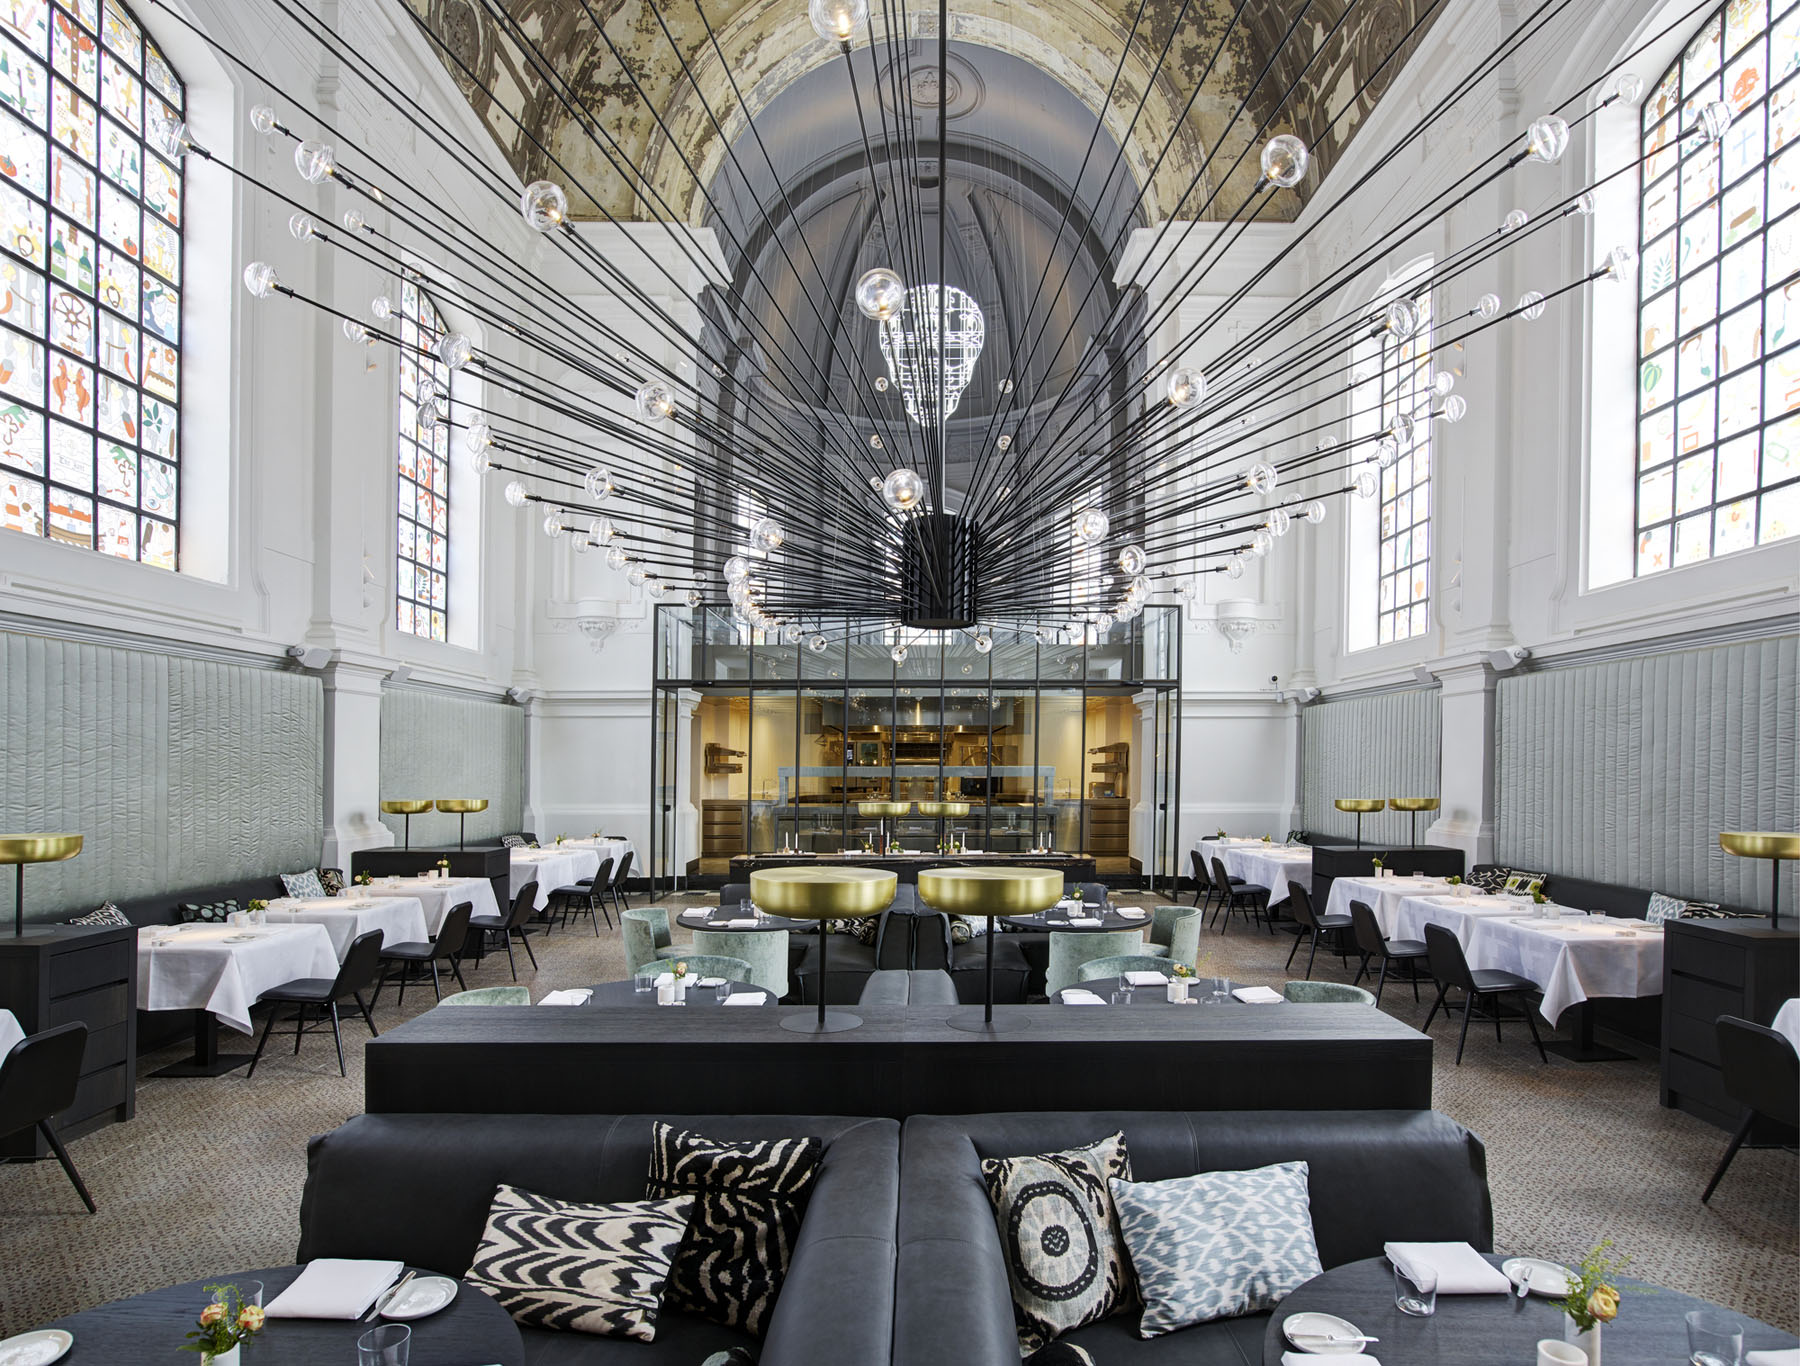 Contemporary Restaurant Church Conversion